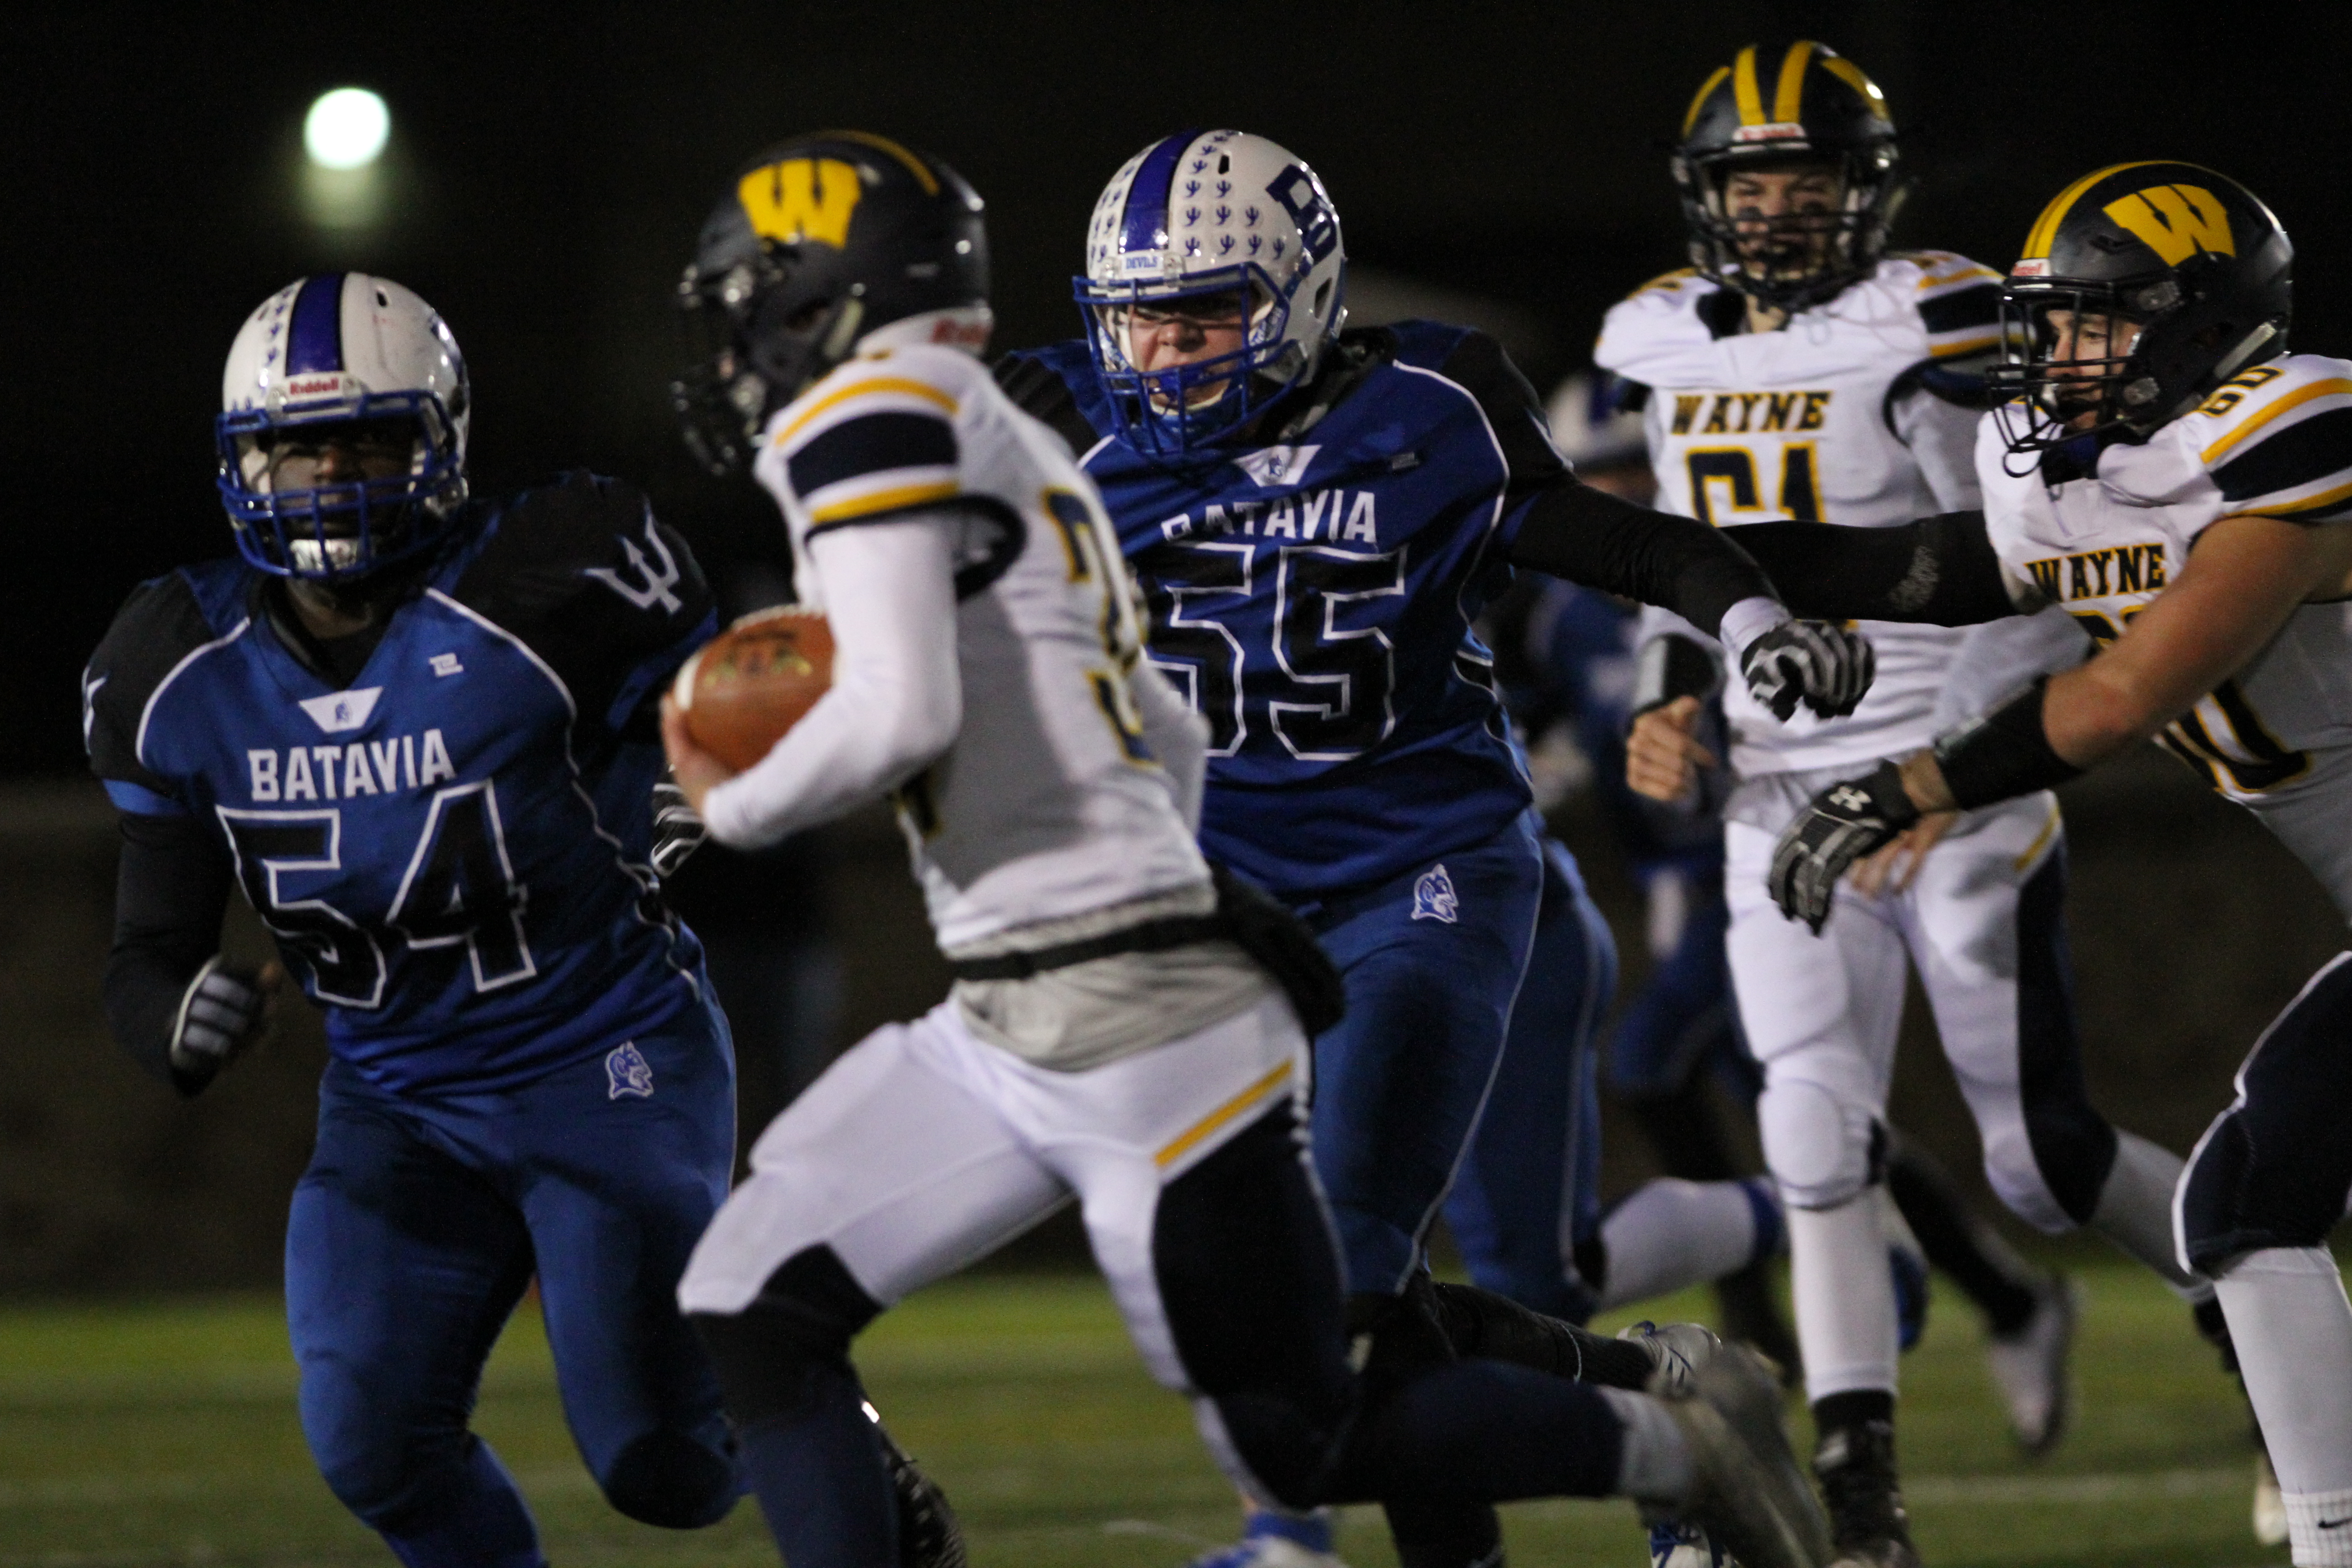 Class B Semifinal Preview: Batavia faces its stiffest challenge yet against No. 1 Skaneateles